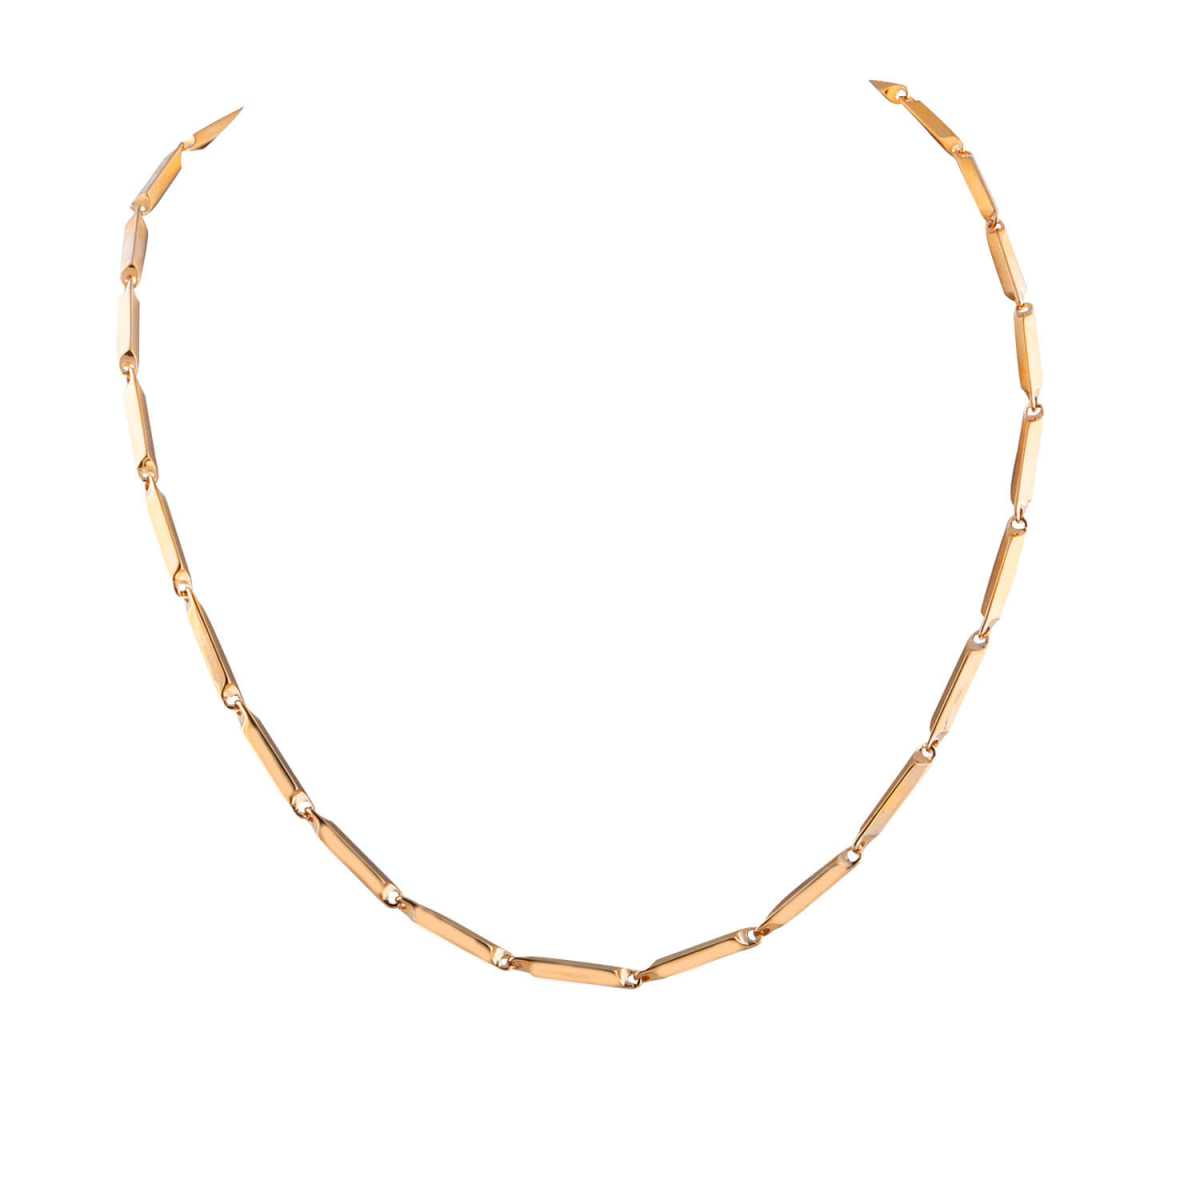 GoldPlated Amazing classic Chain For Men and boy Jewellery